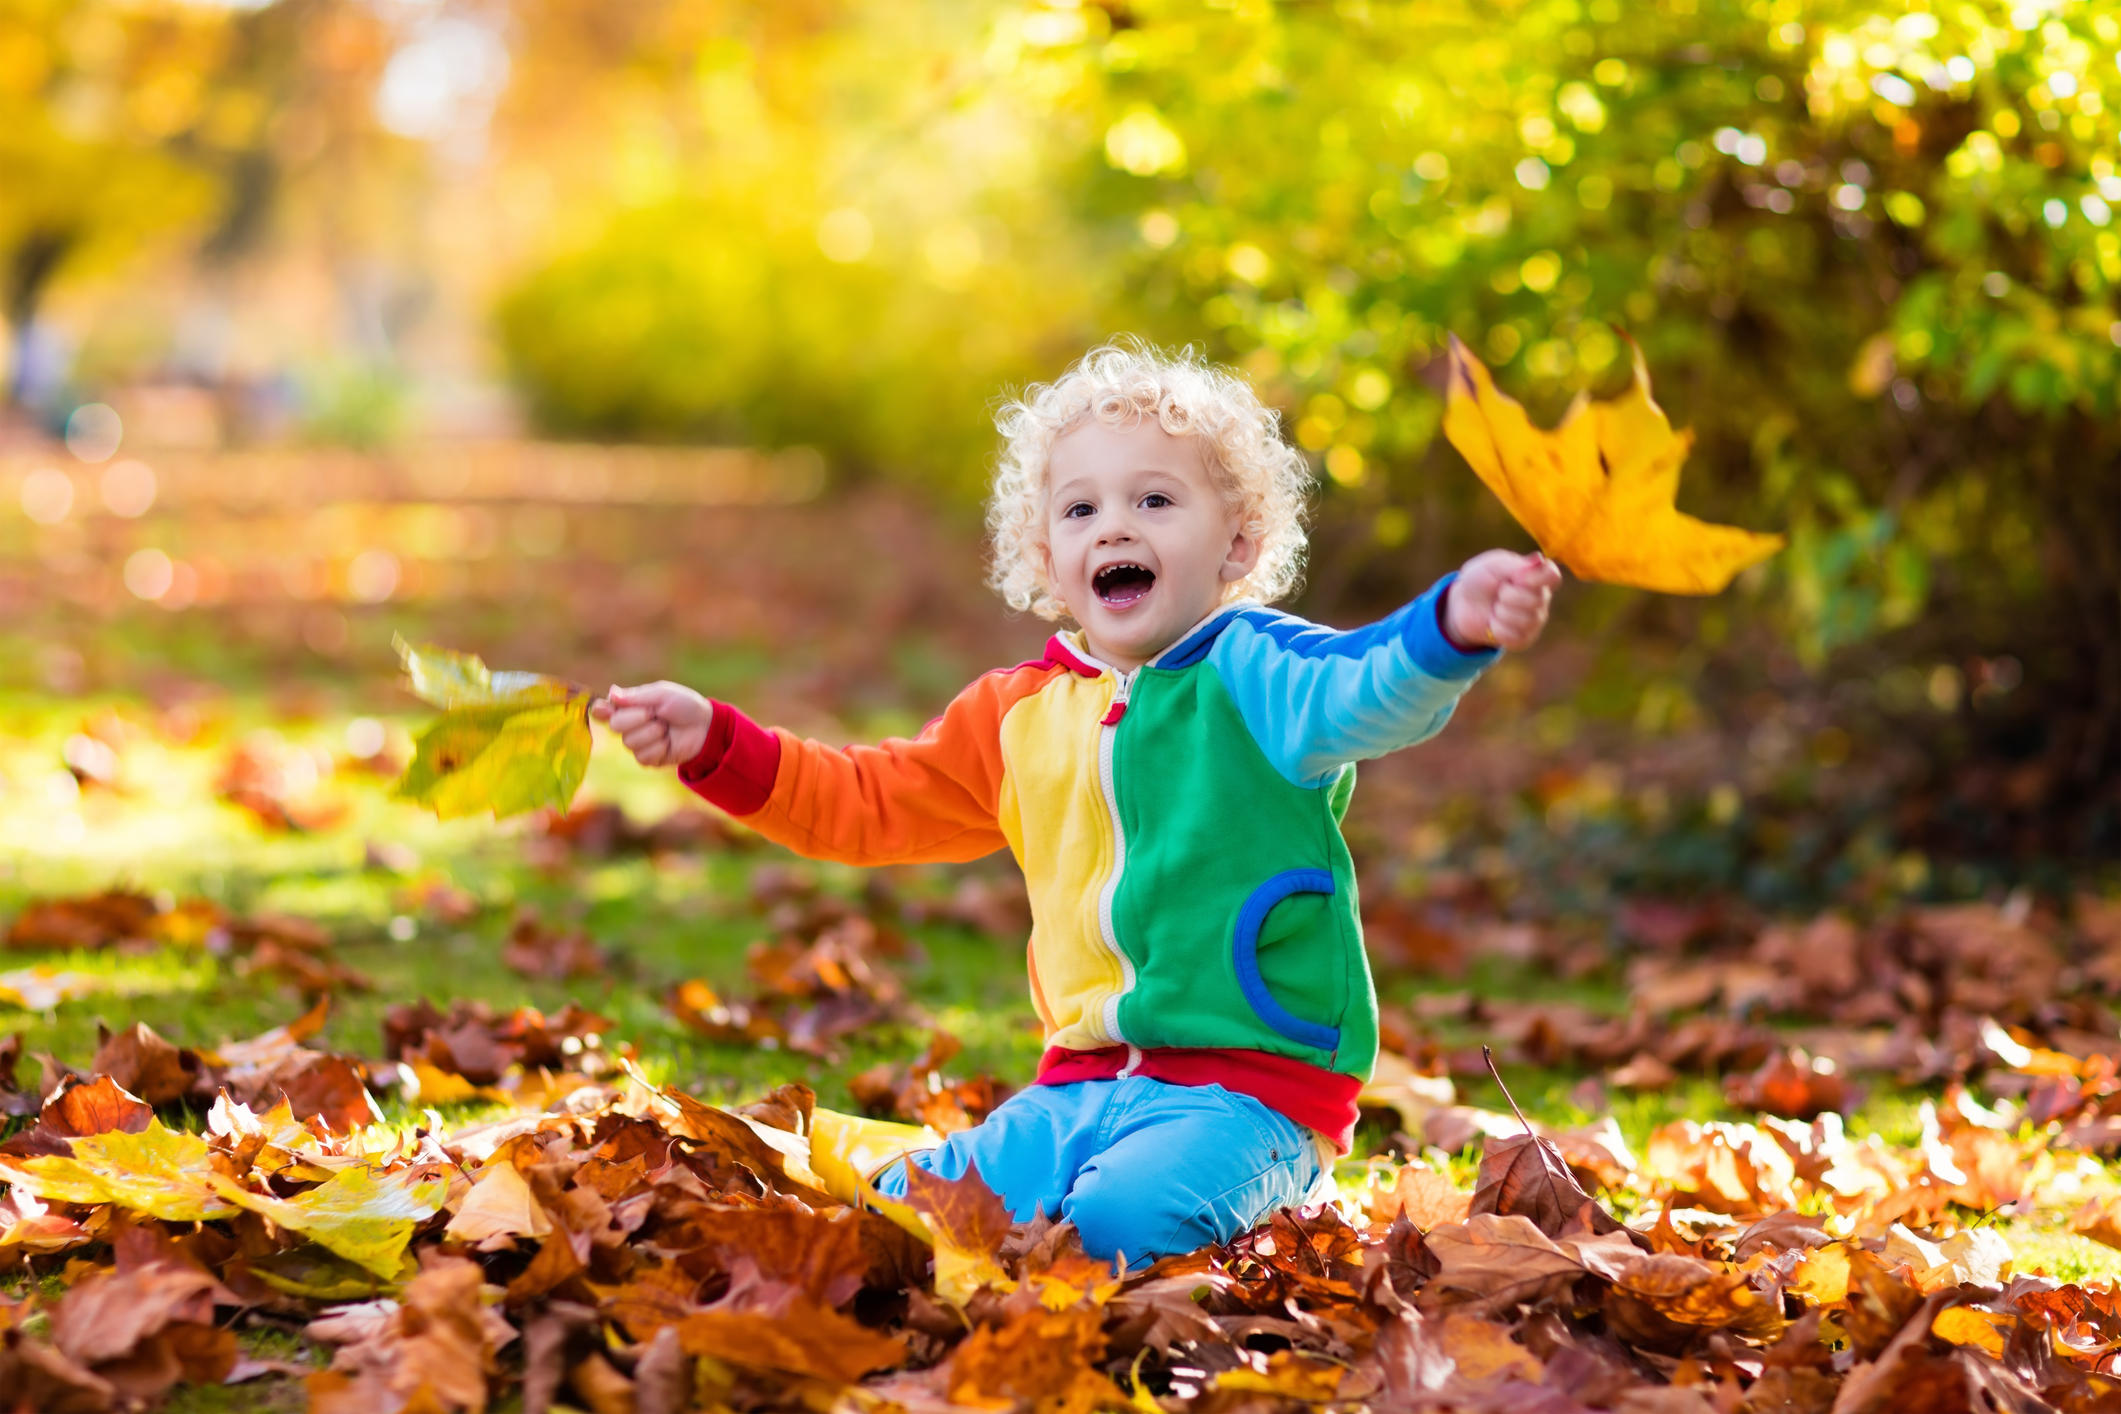 Kids play in autumn park. Children throwing yellow and red leaves. Little boy with oak and maple leaf. Fall foliage. Family outdoor fun in autumn. Toddler kid or preschooler child in fall.